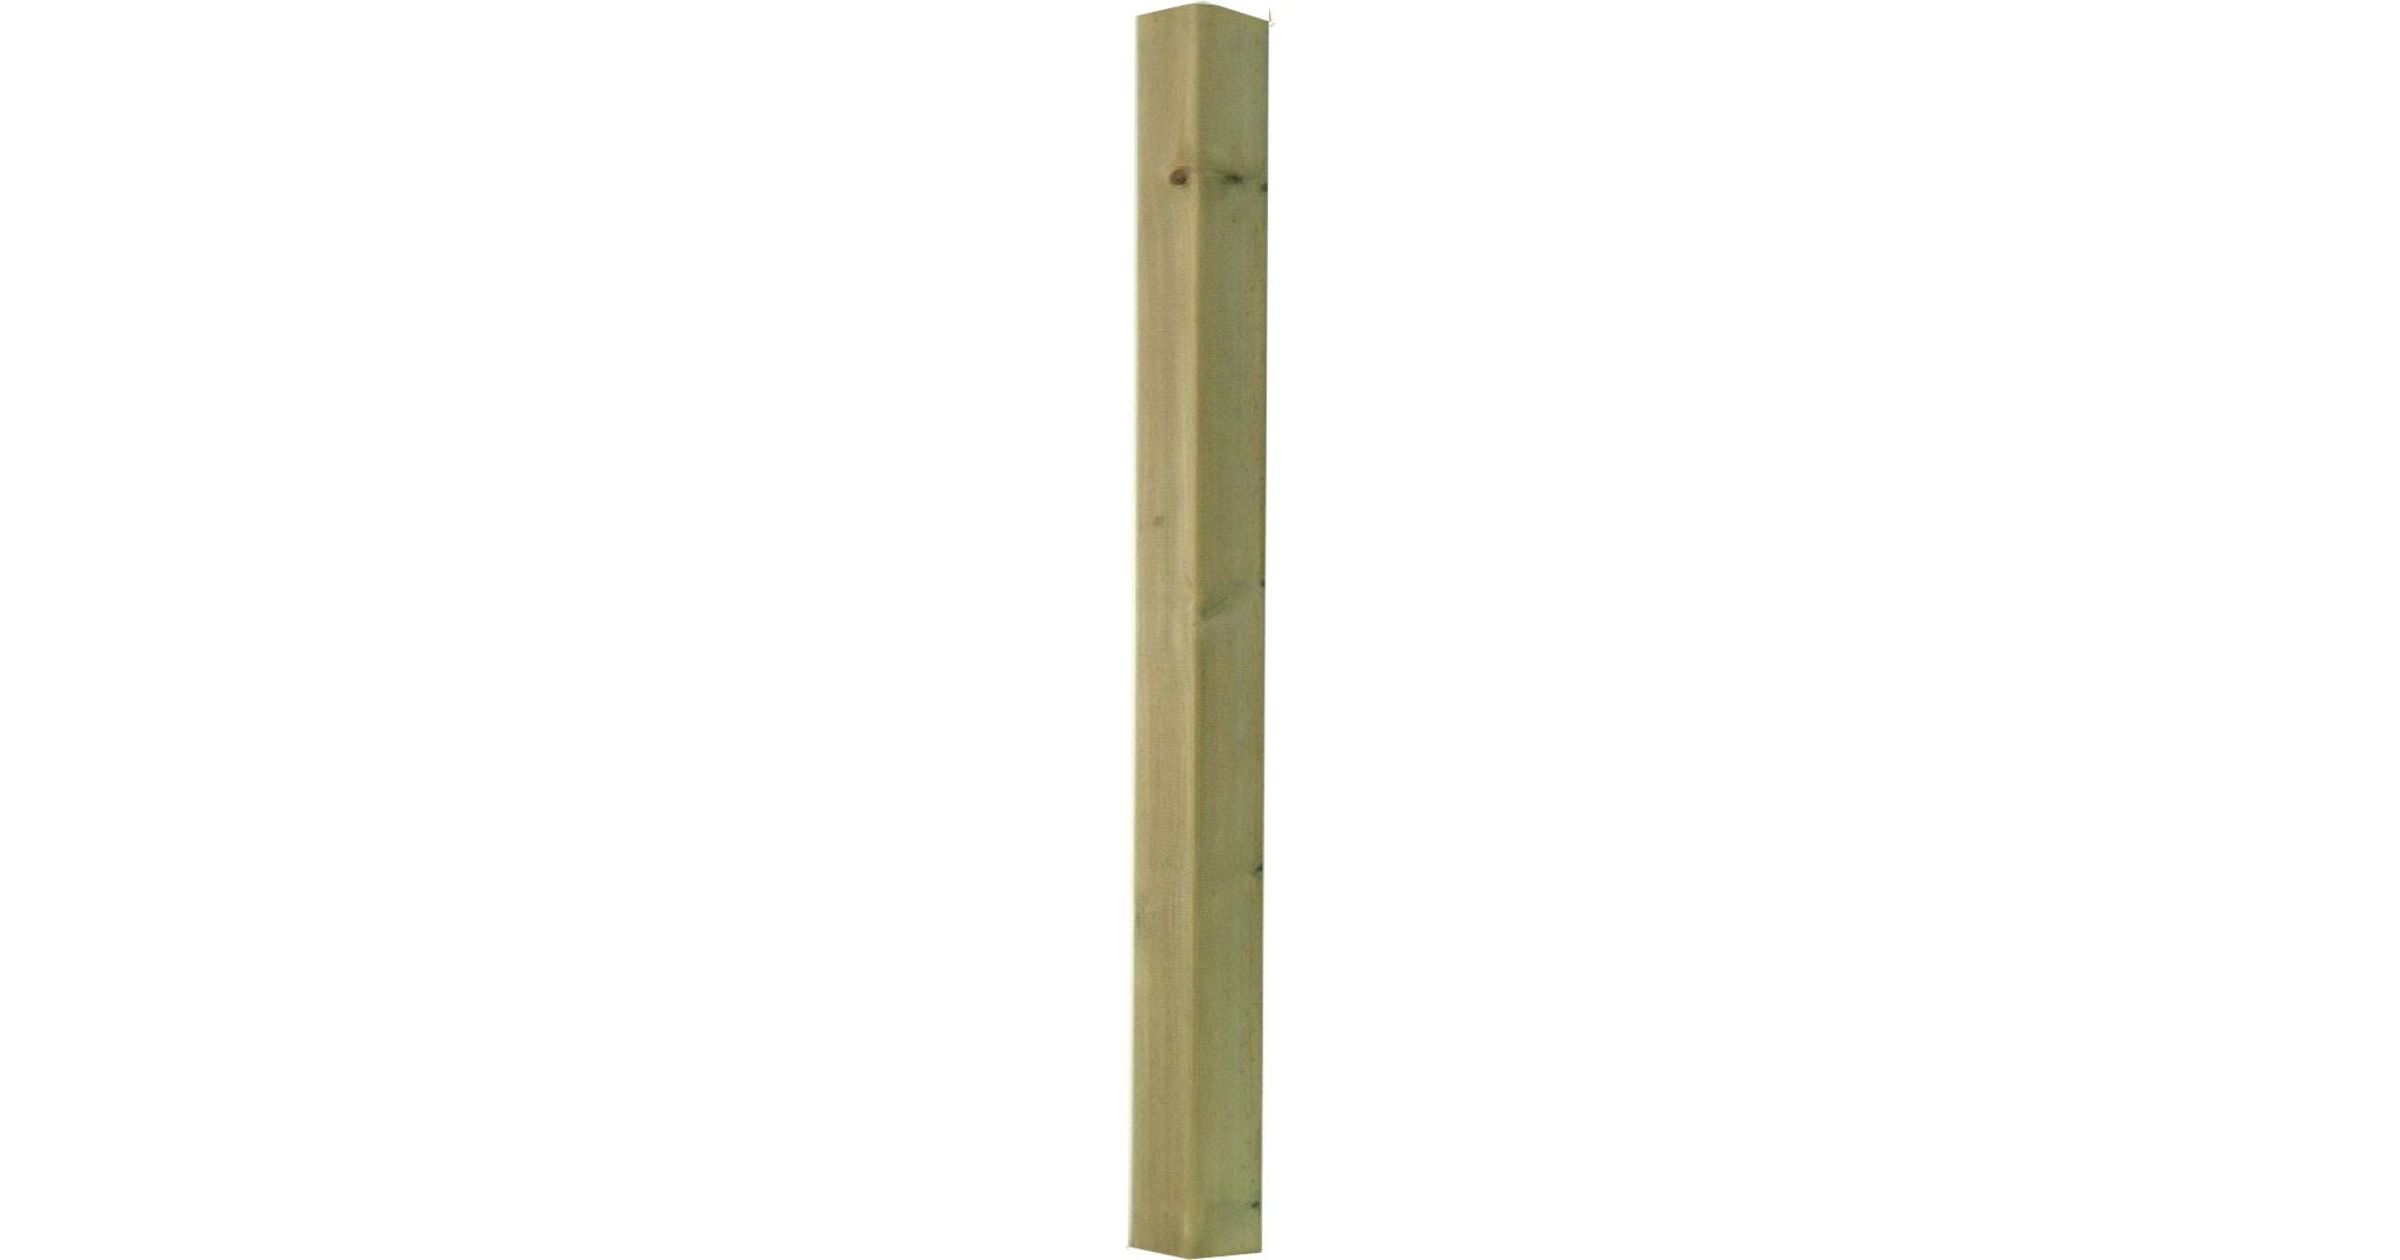 LD226 Treated Square Deck Baluster 41x41x900mm - Richard Burbidge